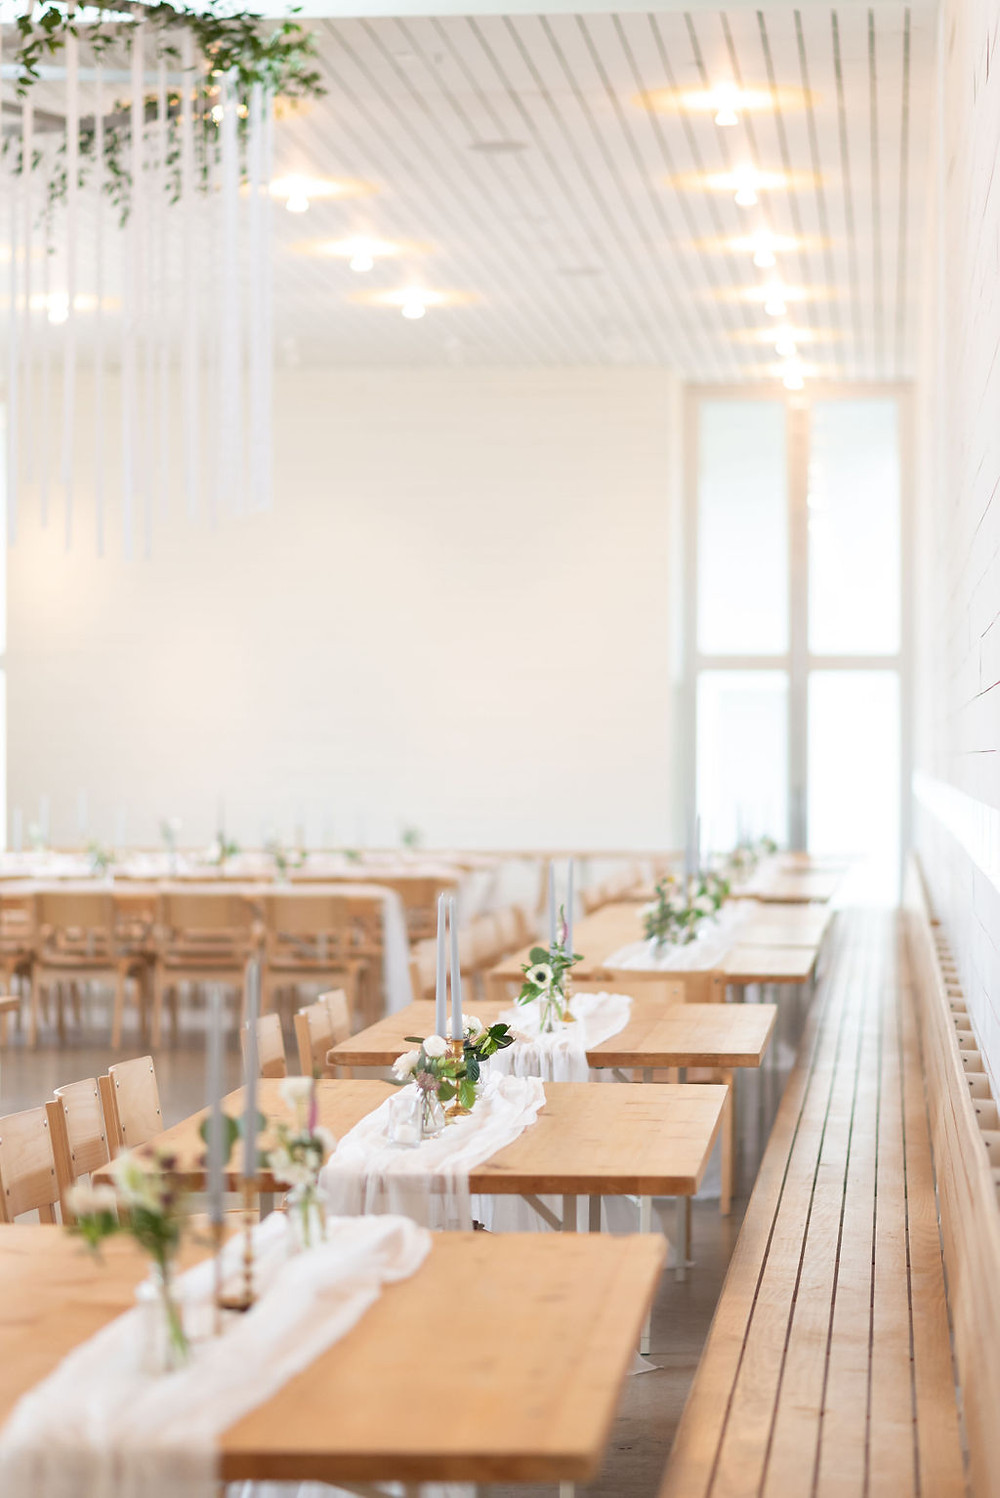 reception area detail shot. long wooden tables with a white chiffon table runner, gray candles, and little glass vases with small assortment of flowers. amazing natural light